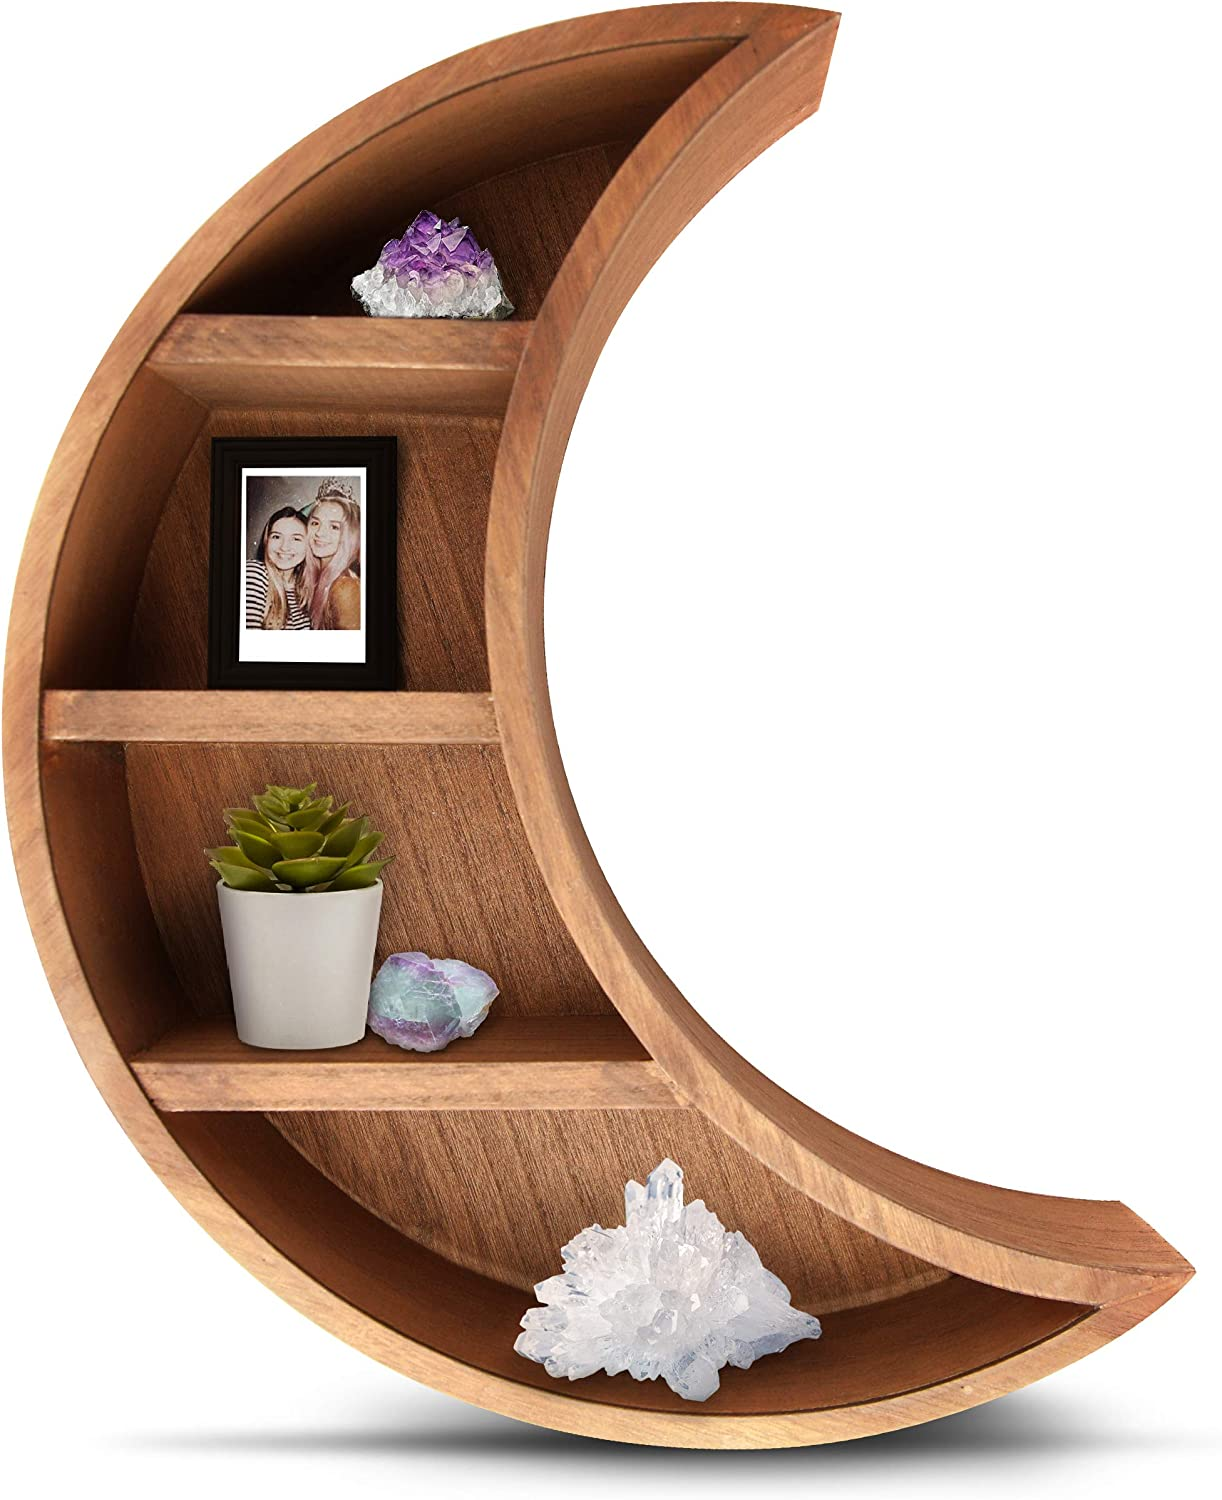 Lunar Sol - Crescent Moon Shelf for Crystals - Solid Wood Craftsmanship for Any Home, Nursery, Dorm or Bedroom - Great for Stones, Crystals, Essential Oils and Plants - Boho Display Wall Decor